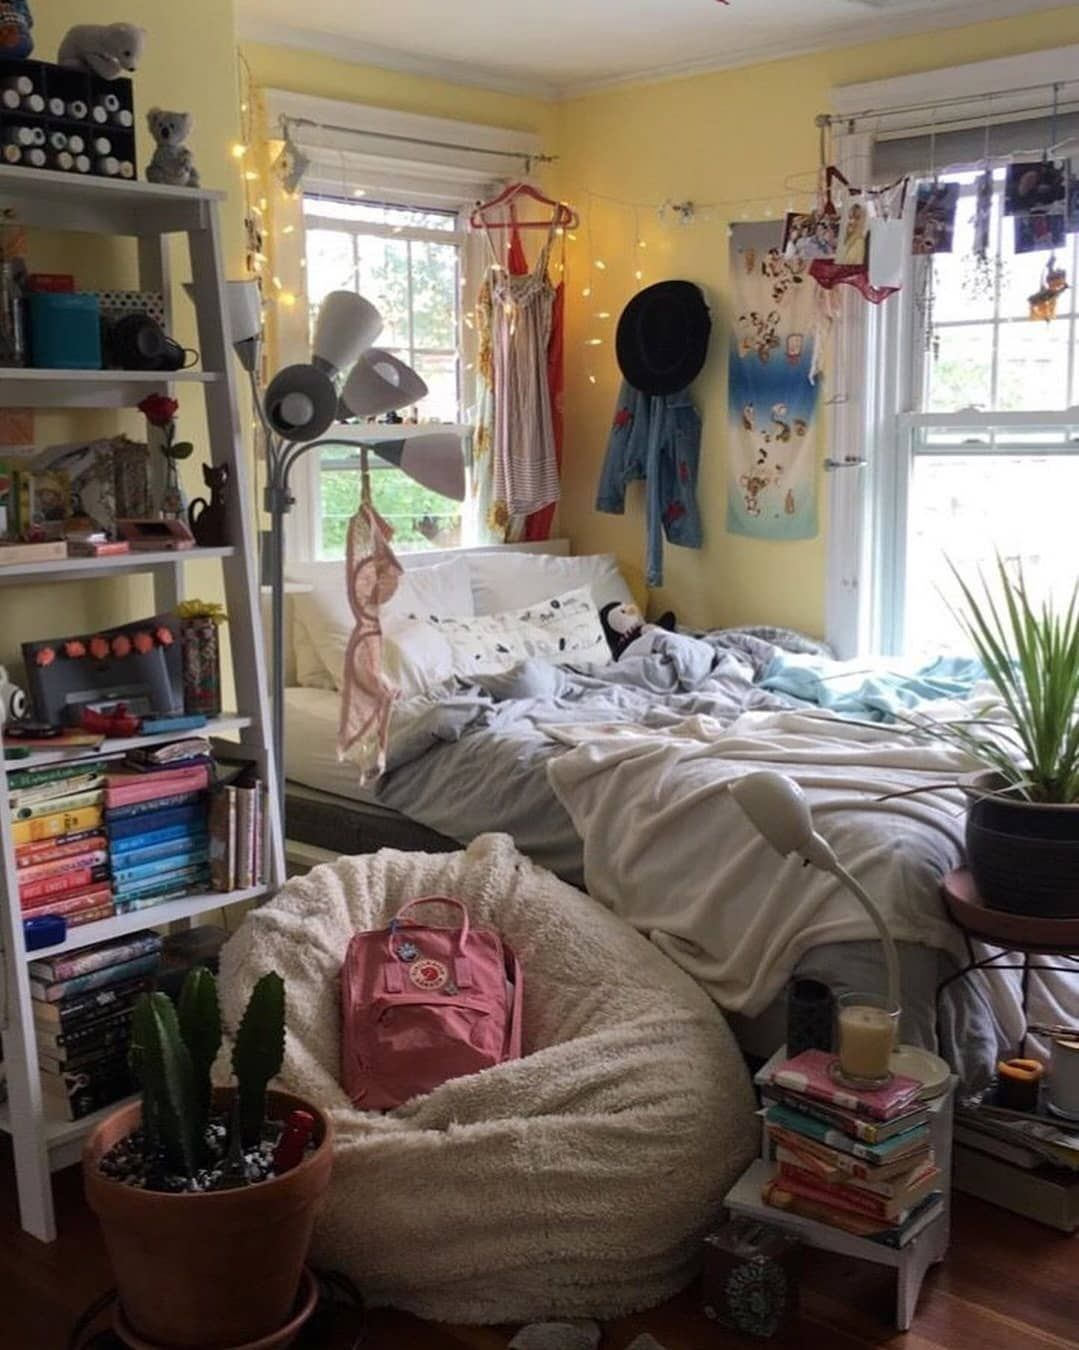 Pin By Lovely Girl On Indie Retro Room Inspo In 2020 Indie Room Room Inspo Retro Room